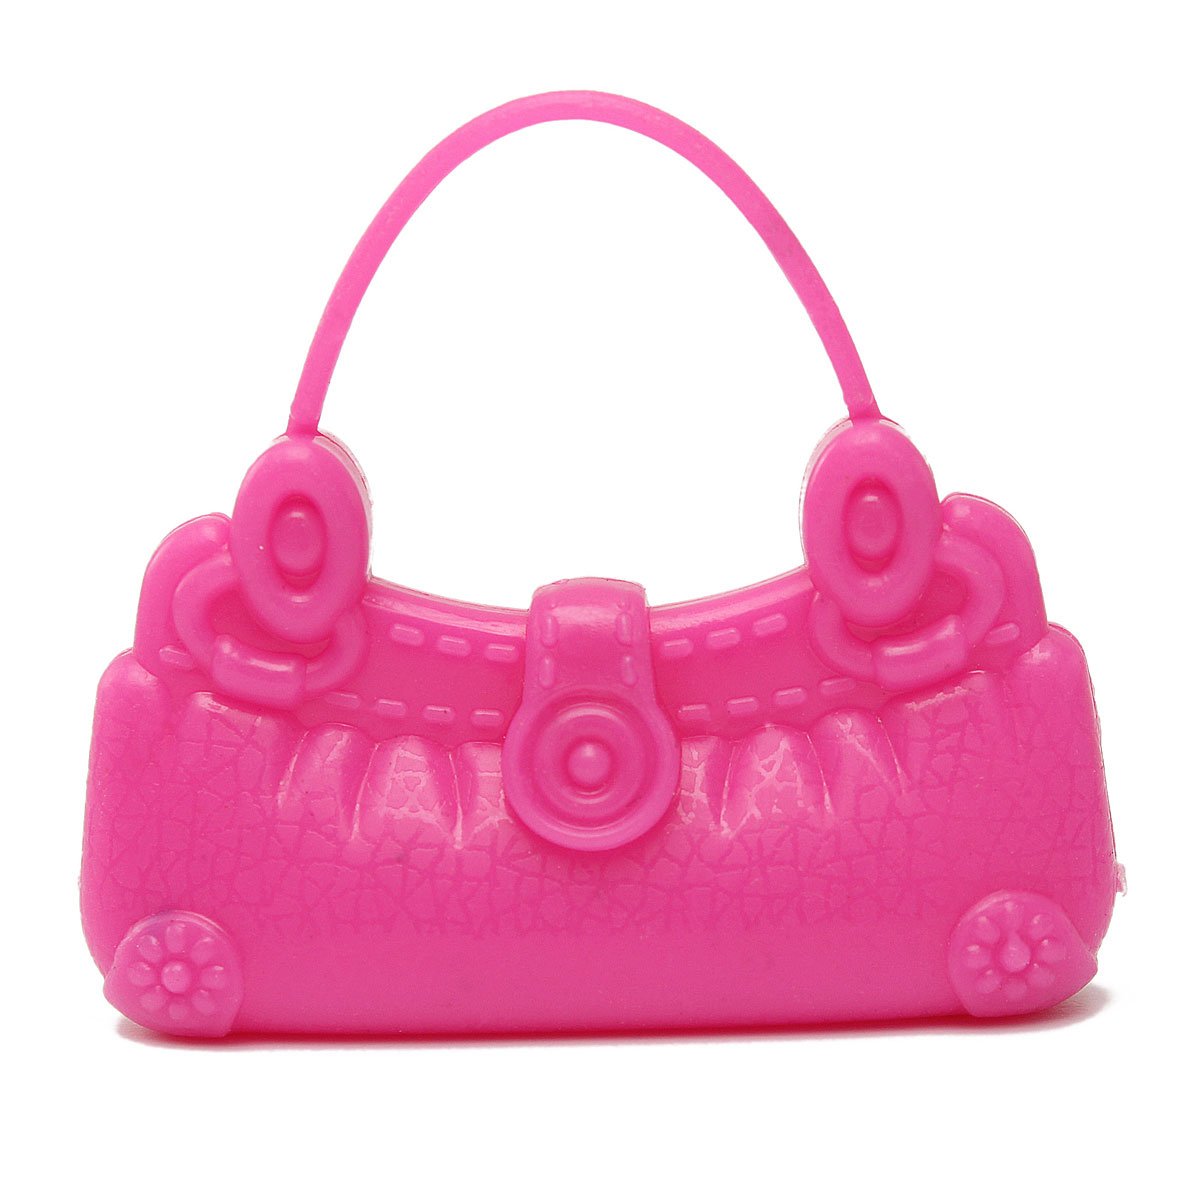 Barbie Girl: 22 Stylish Plastic Accessories You Have to Shop ThisSpring